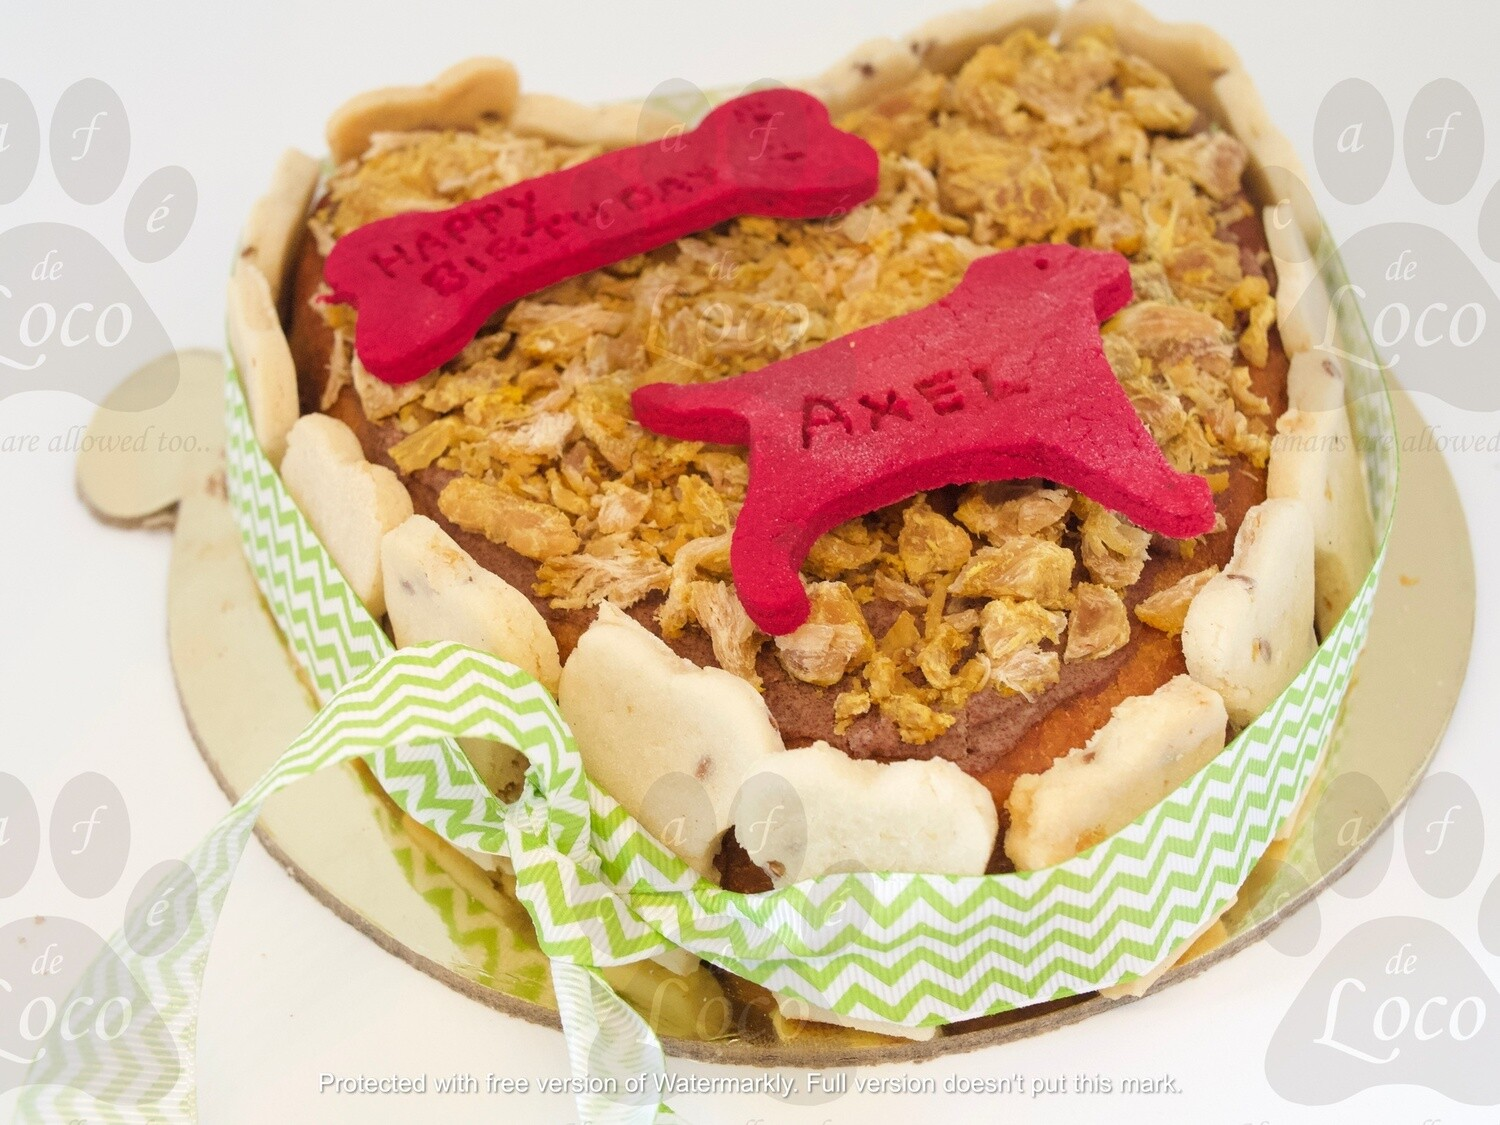 Non Icing cake with side cookies + top decoration ( Heart)